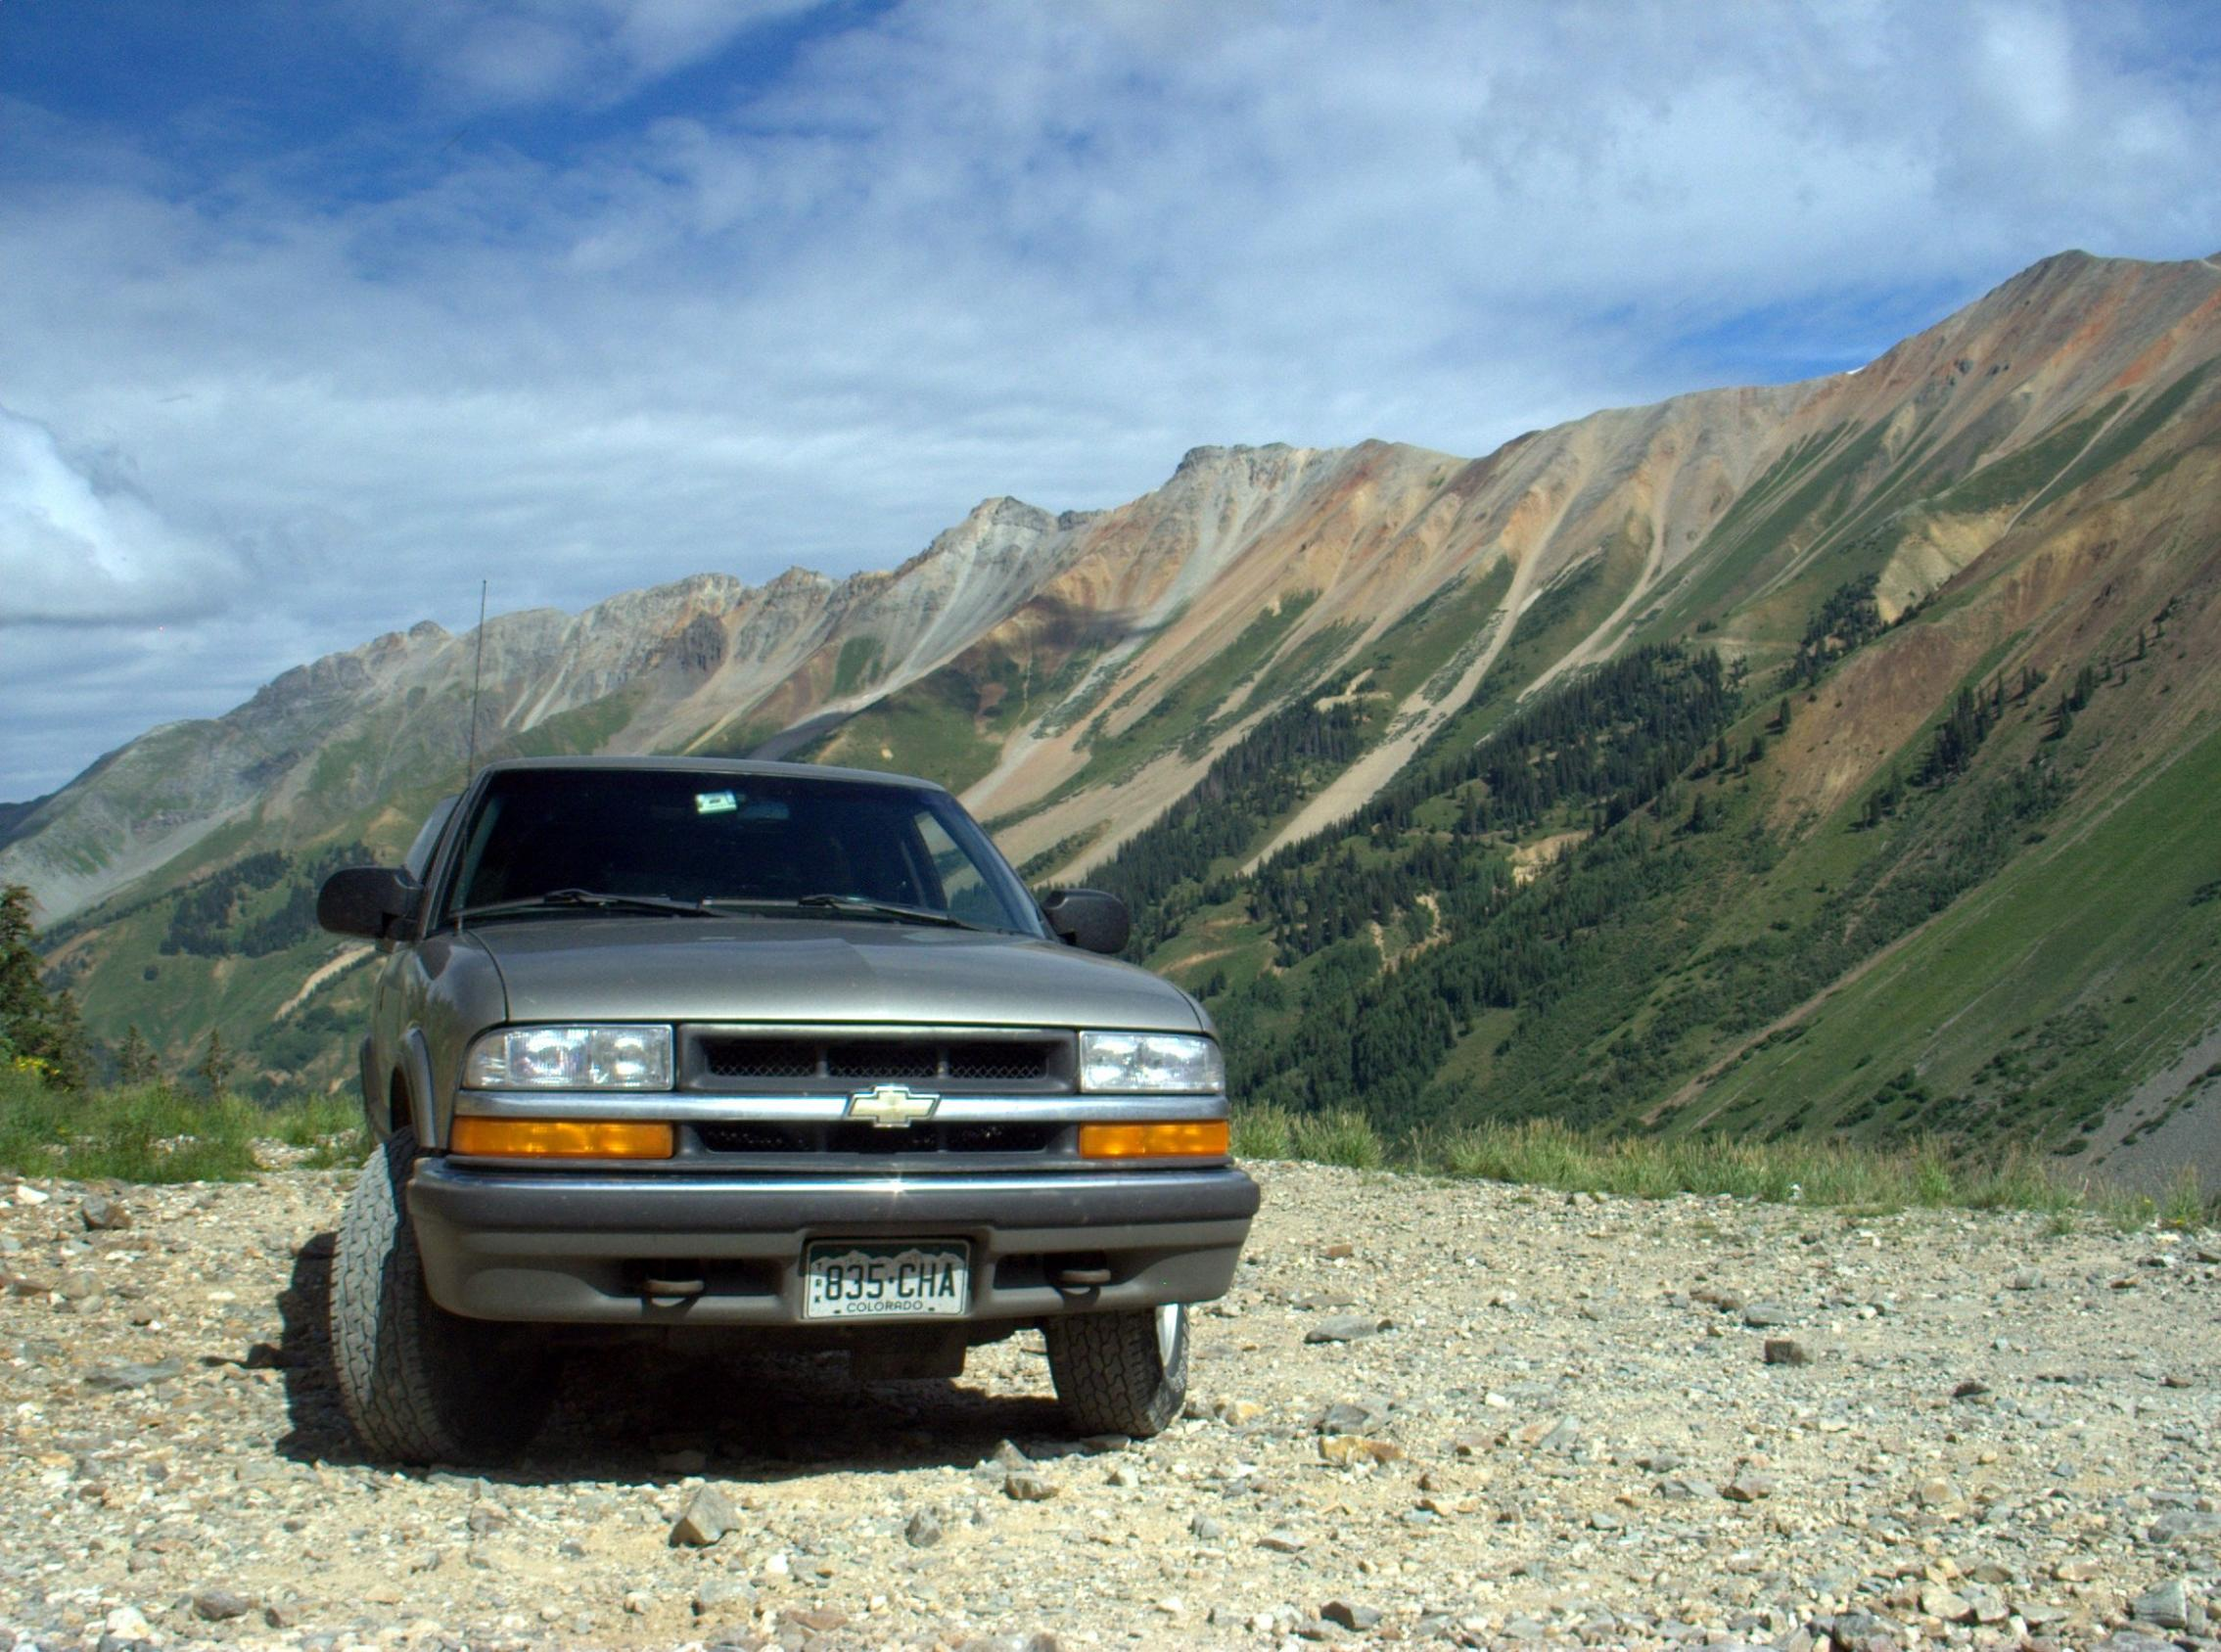 Show Us Your Truck-179_7984.jpg